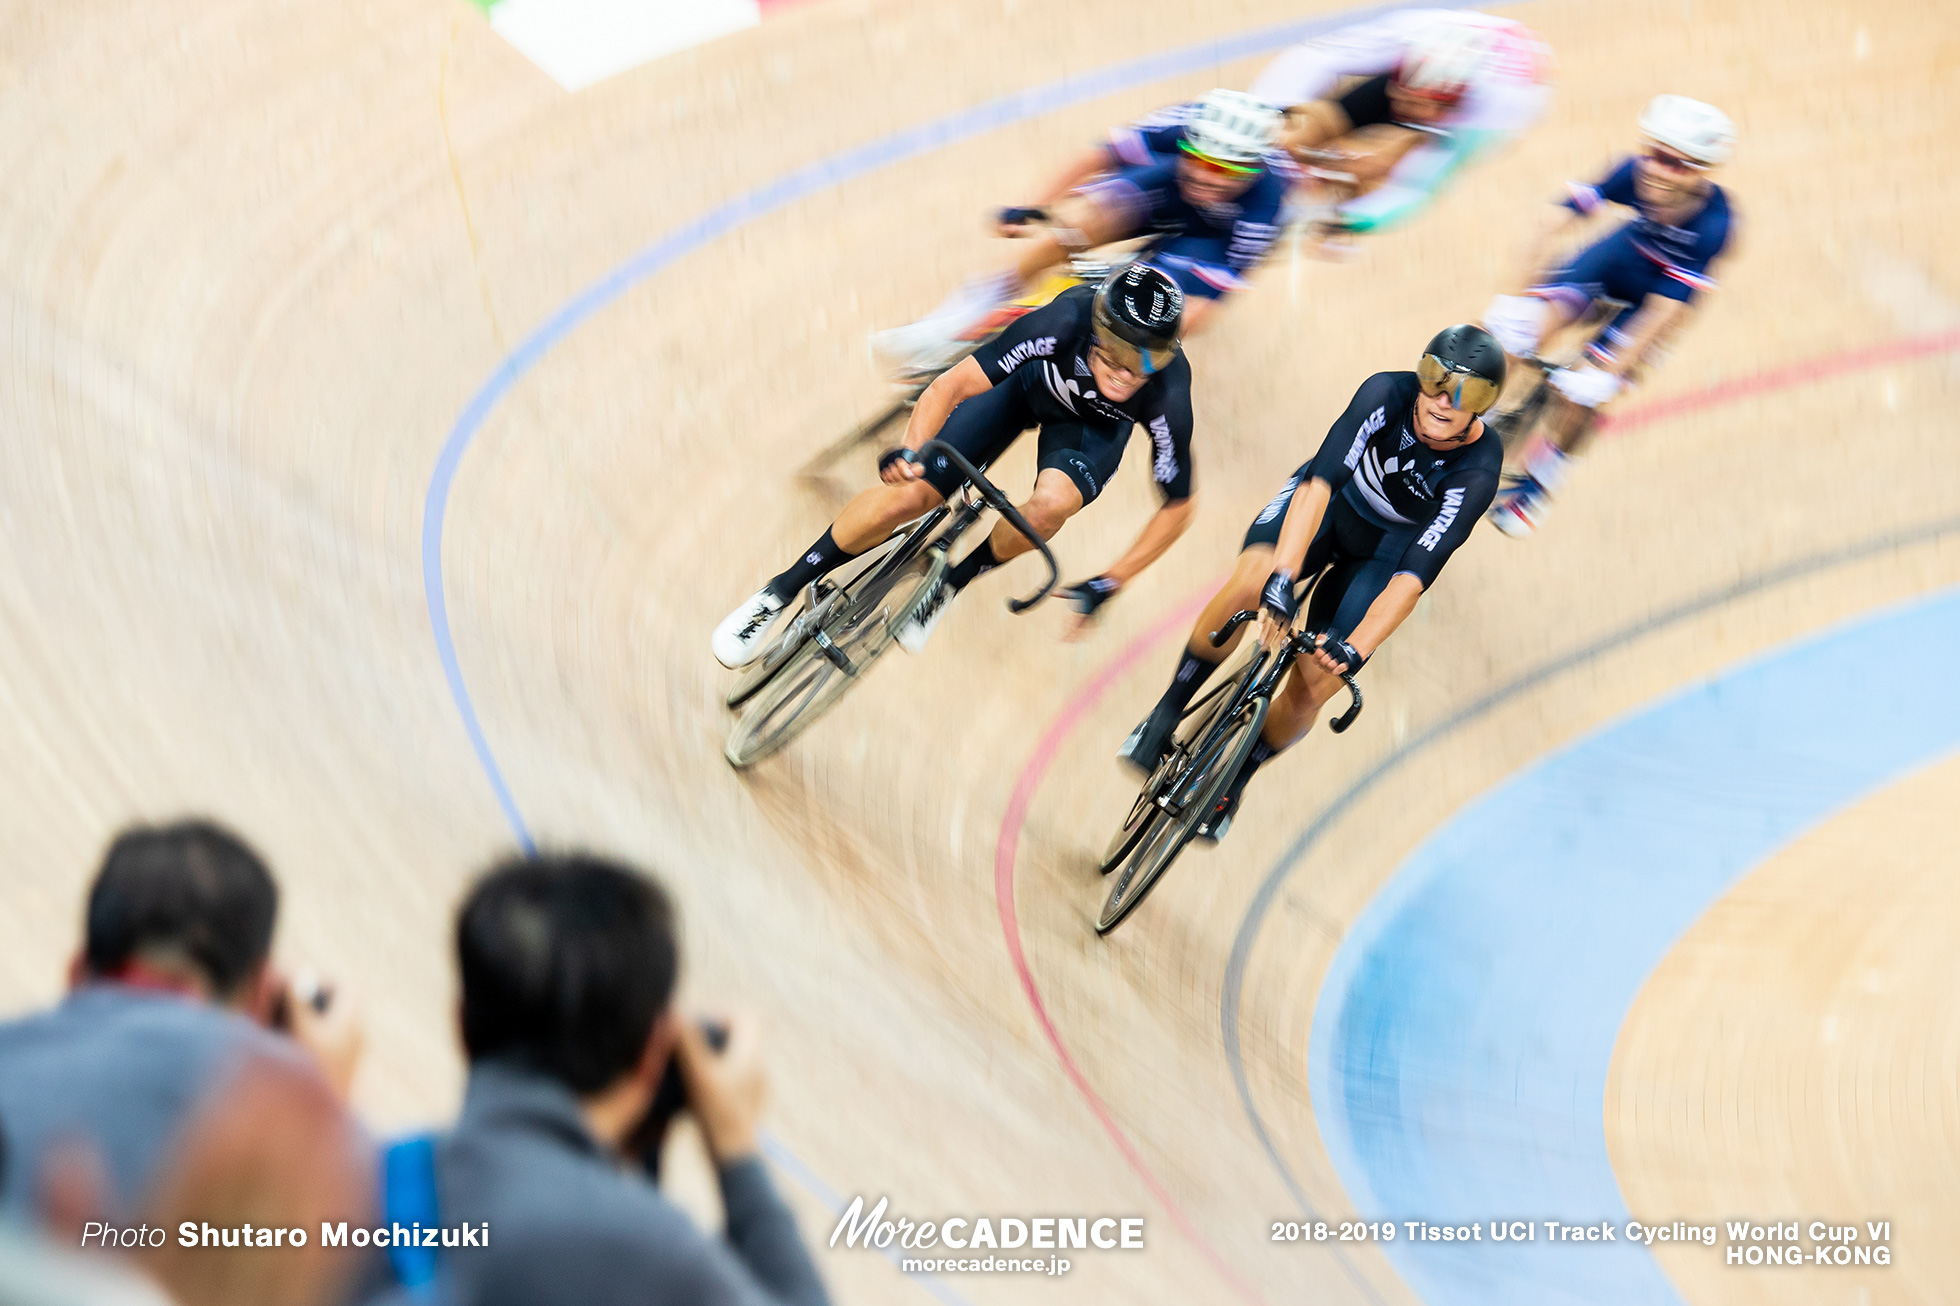 Men's Madison / Track Cycling World Cup VI / Hong-Kong